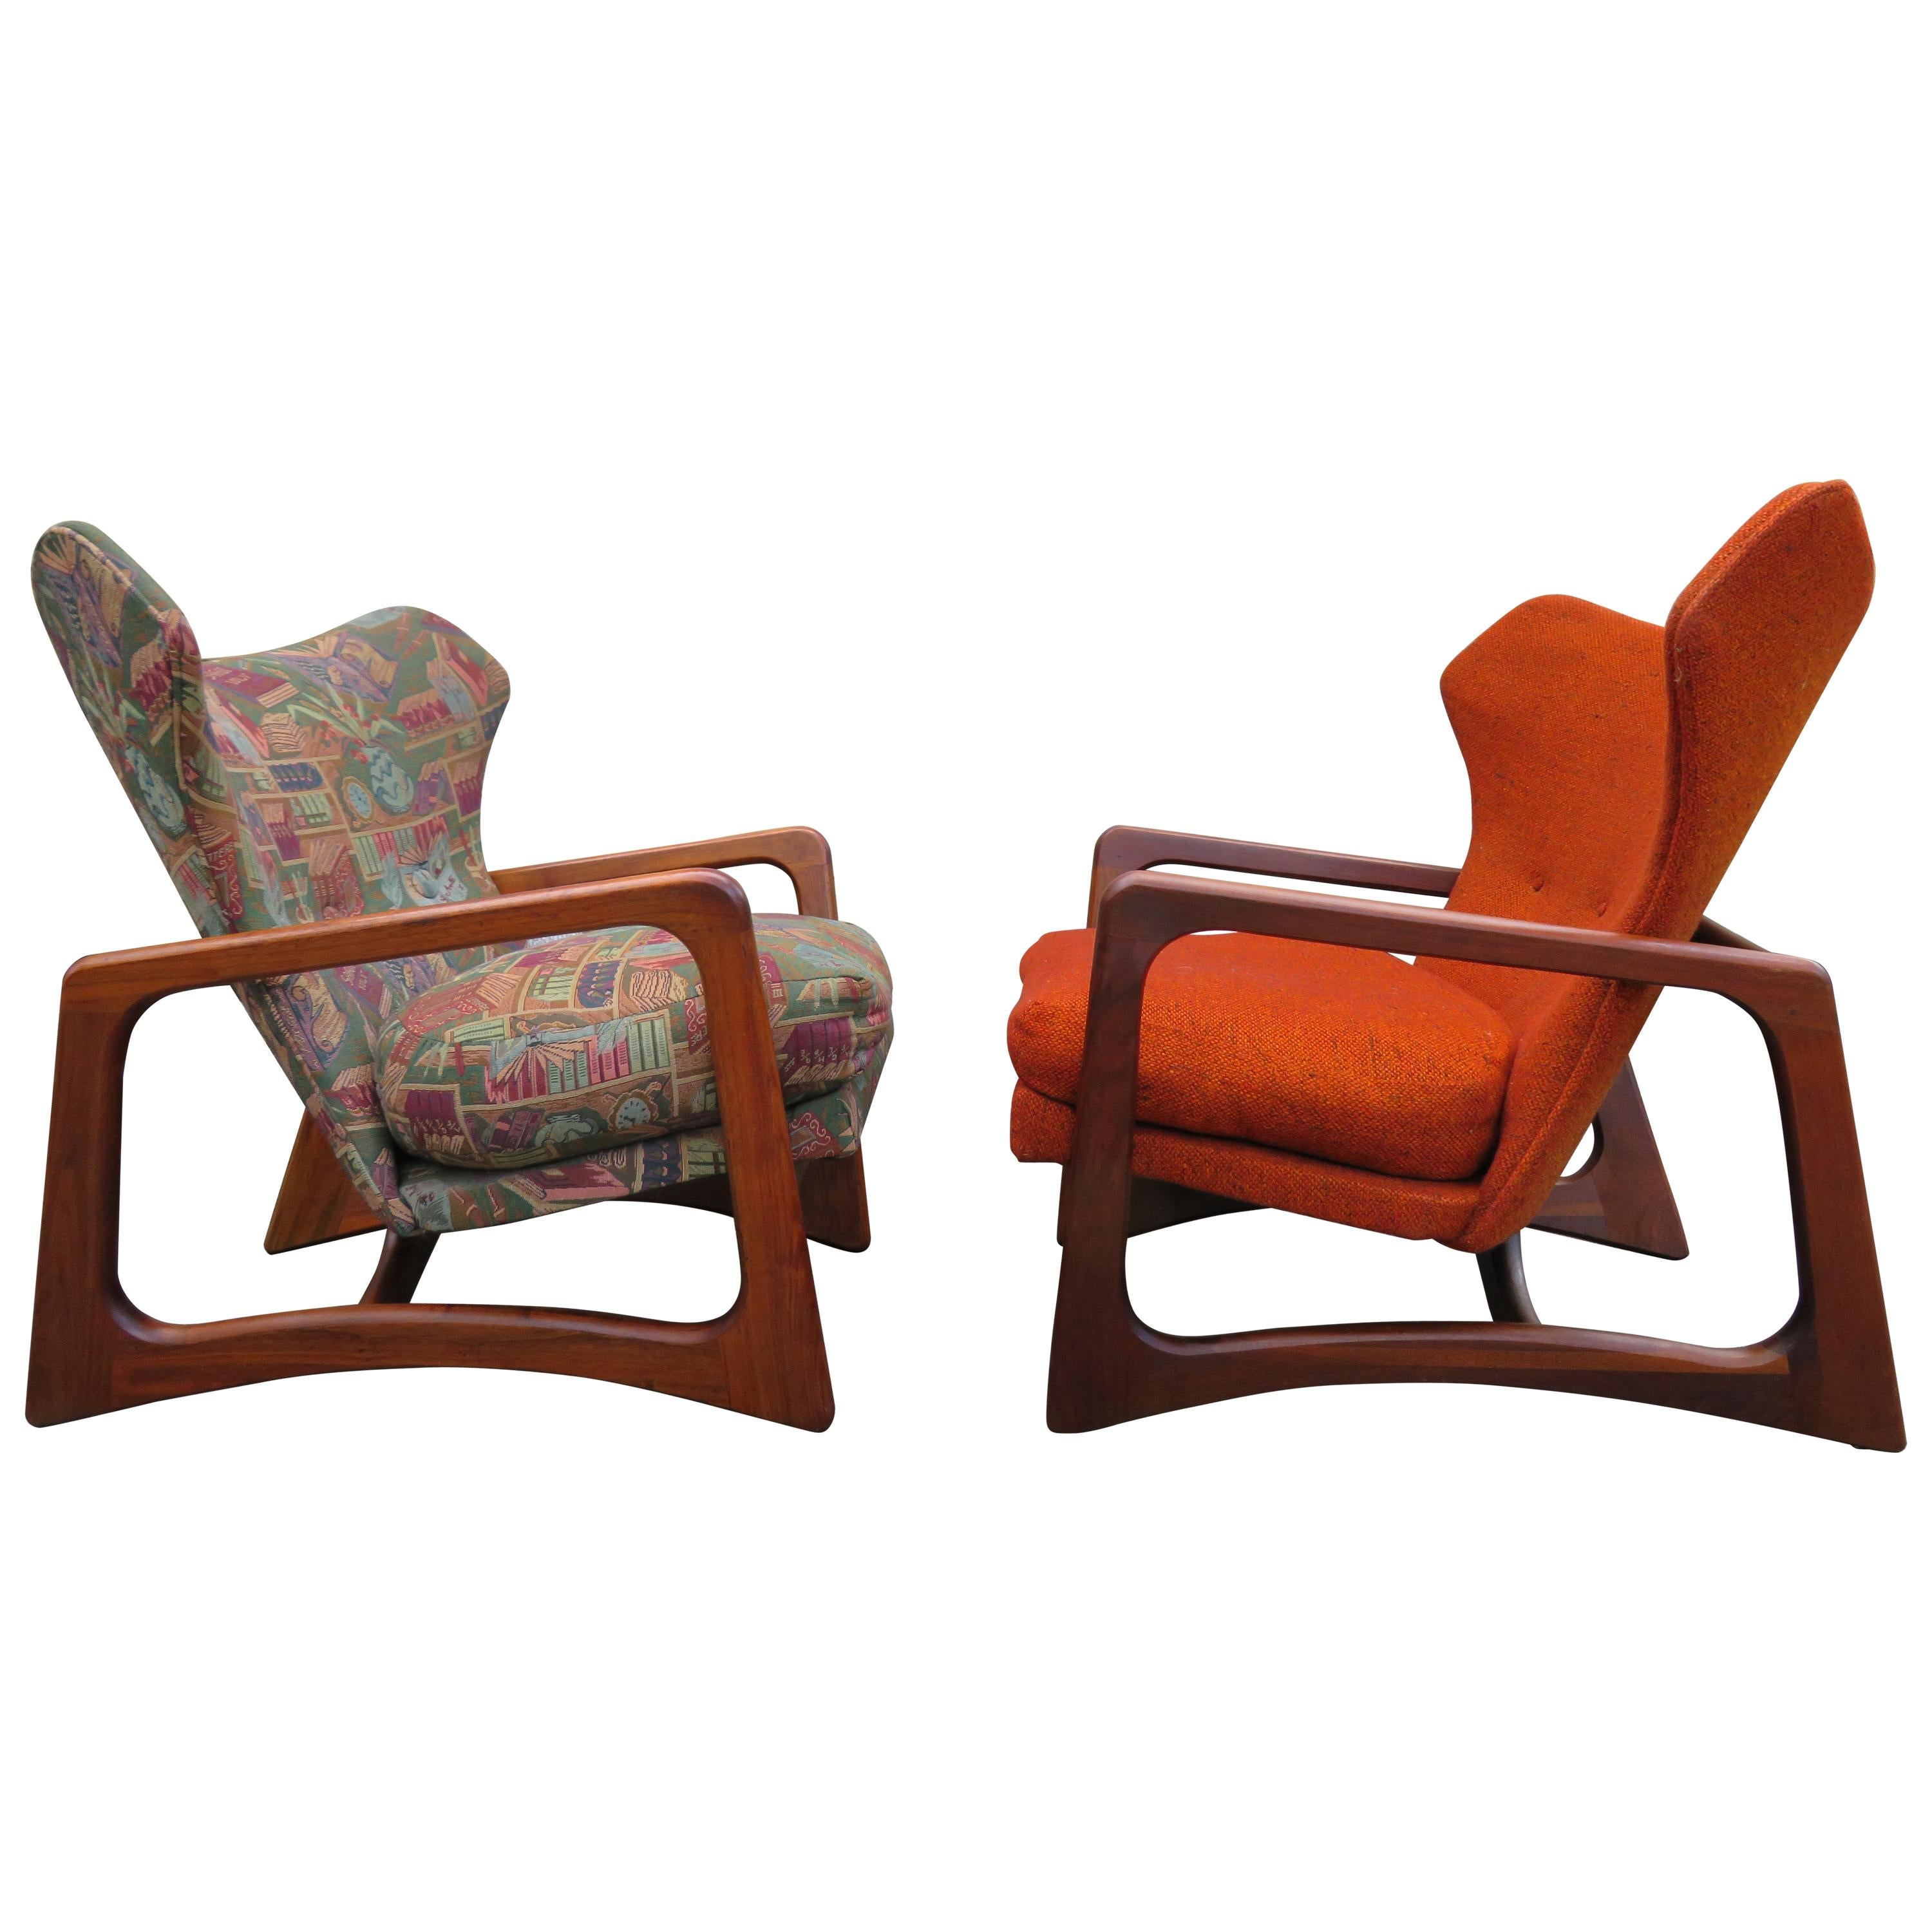 Stylish Pair Adrian Pearsall Unique Wing Back Chair Sculpted Walnut Midcentury